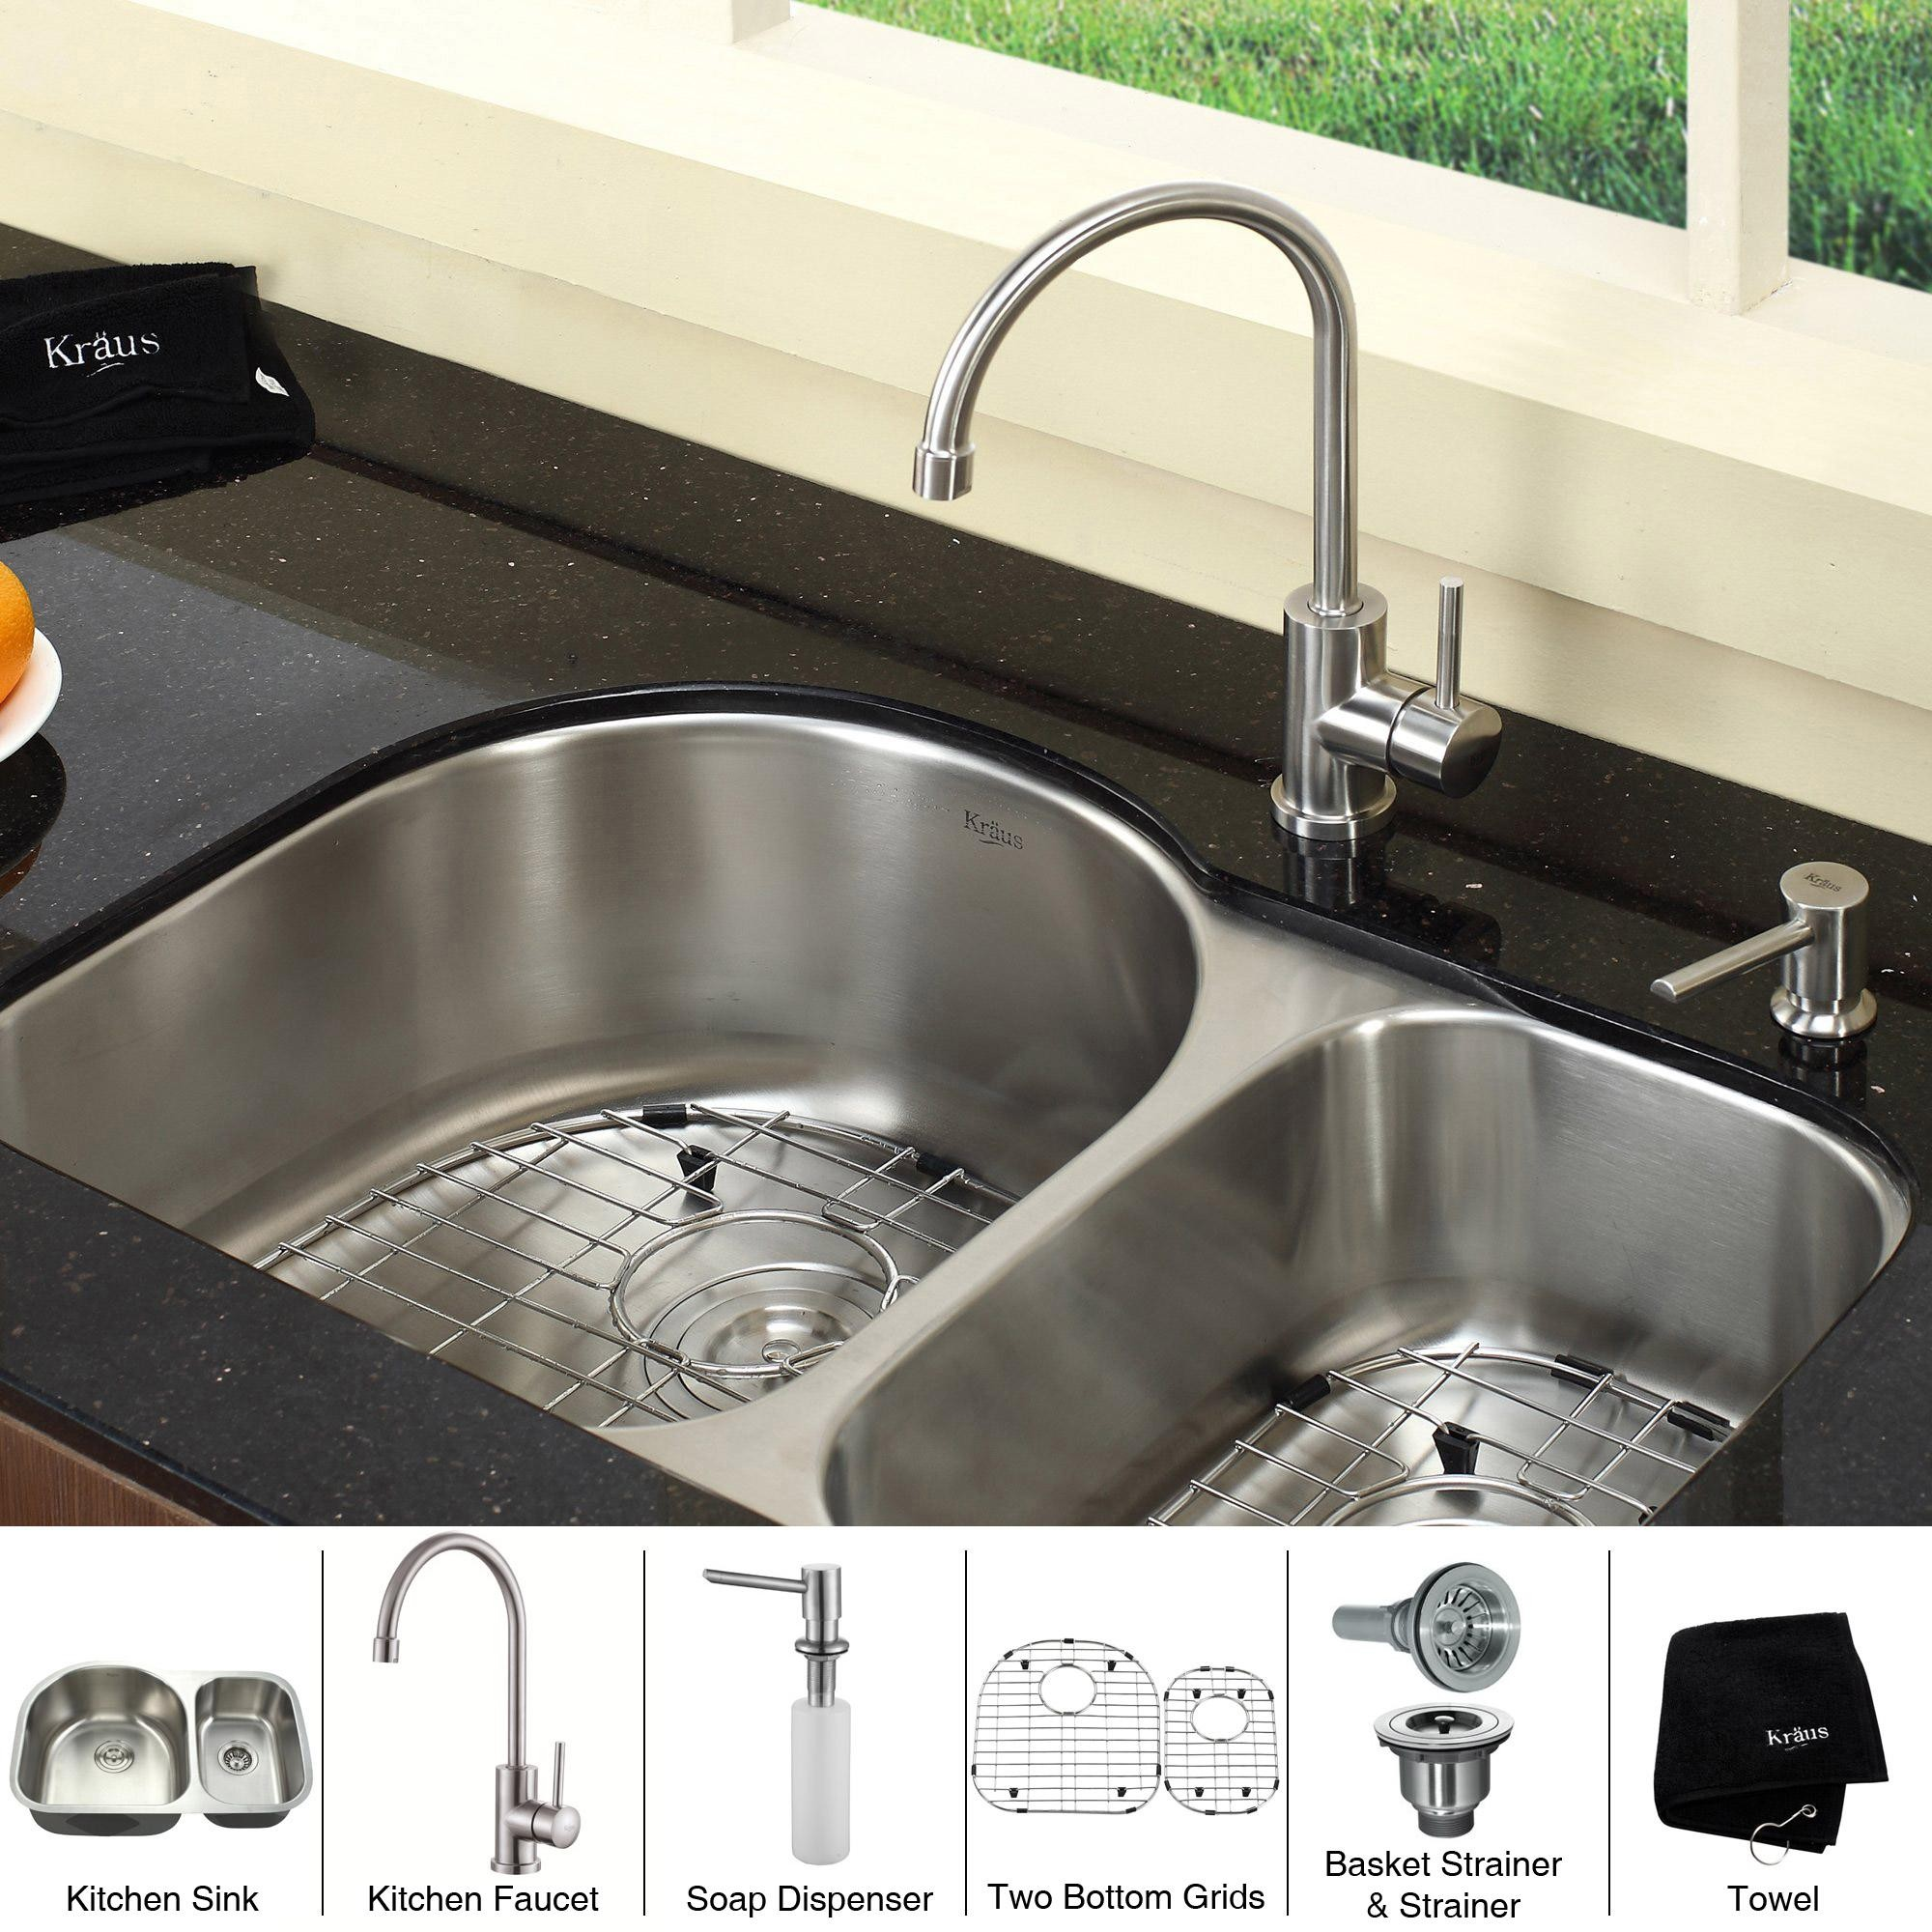 Kitchen Sink With 9 Inch 7 Bowl